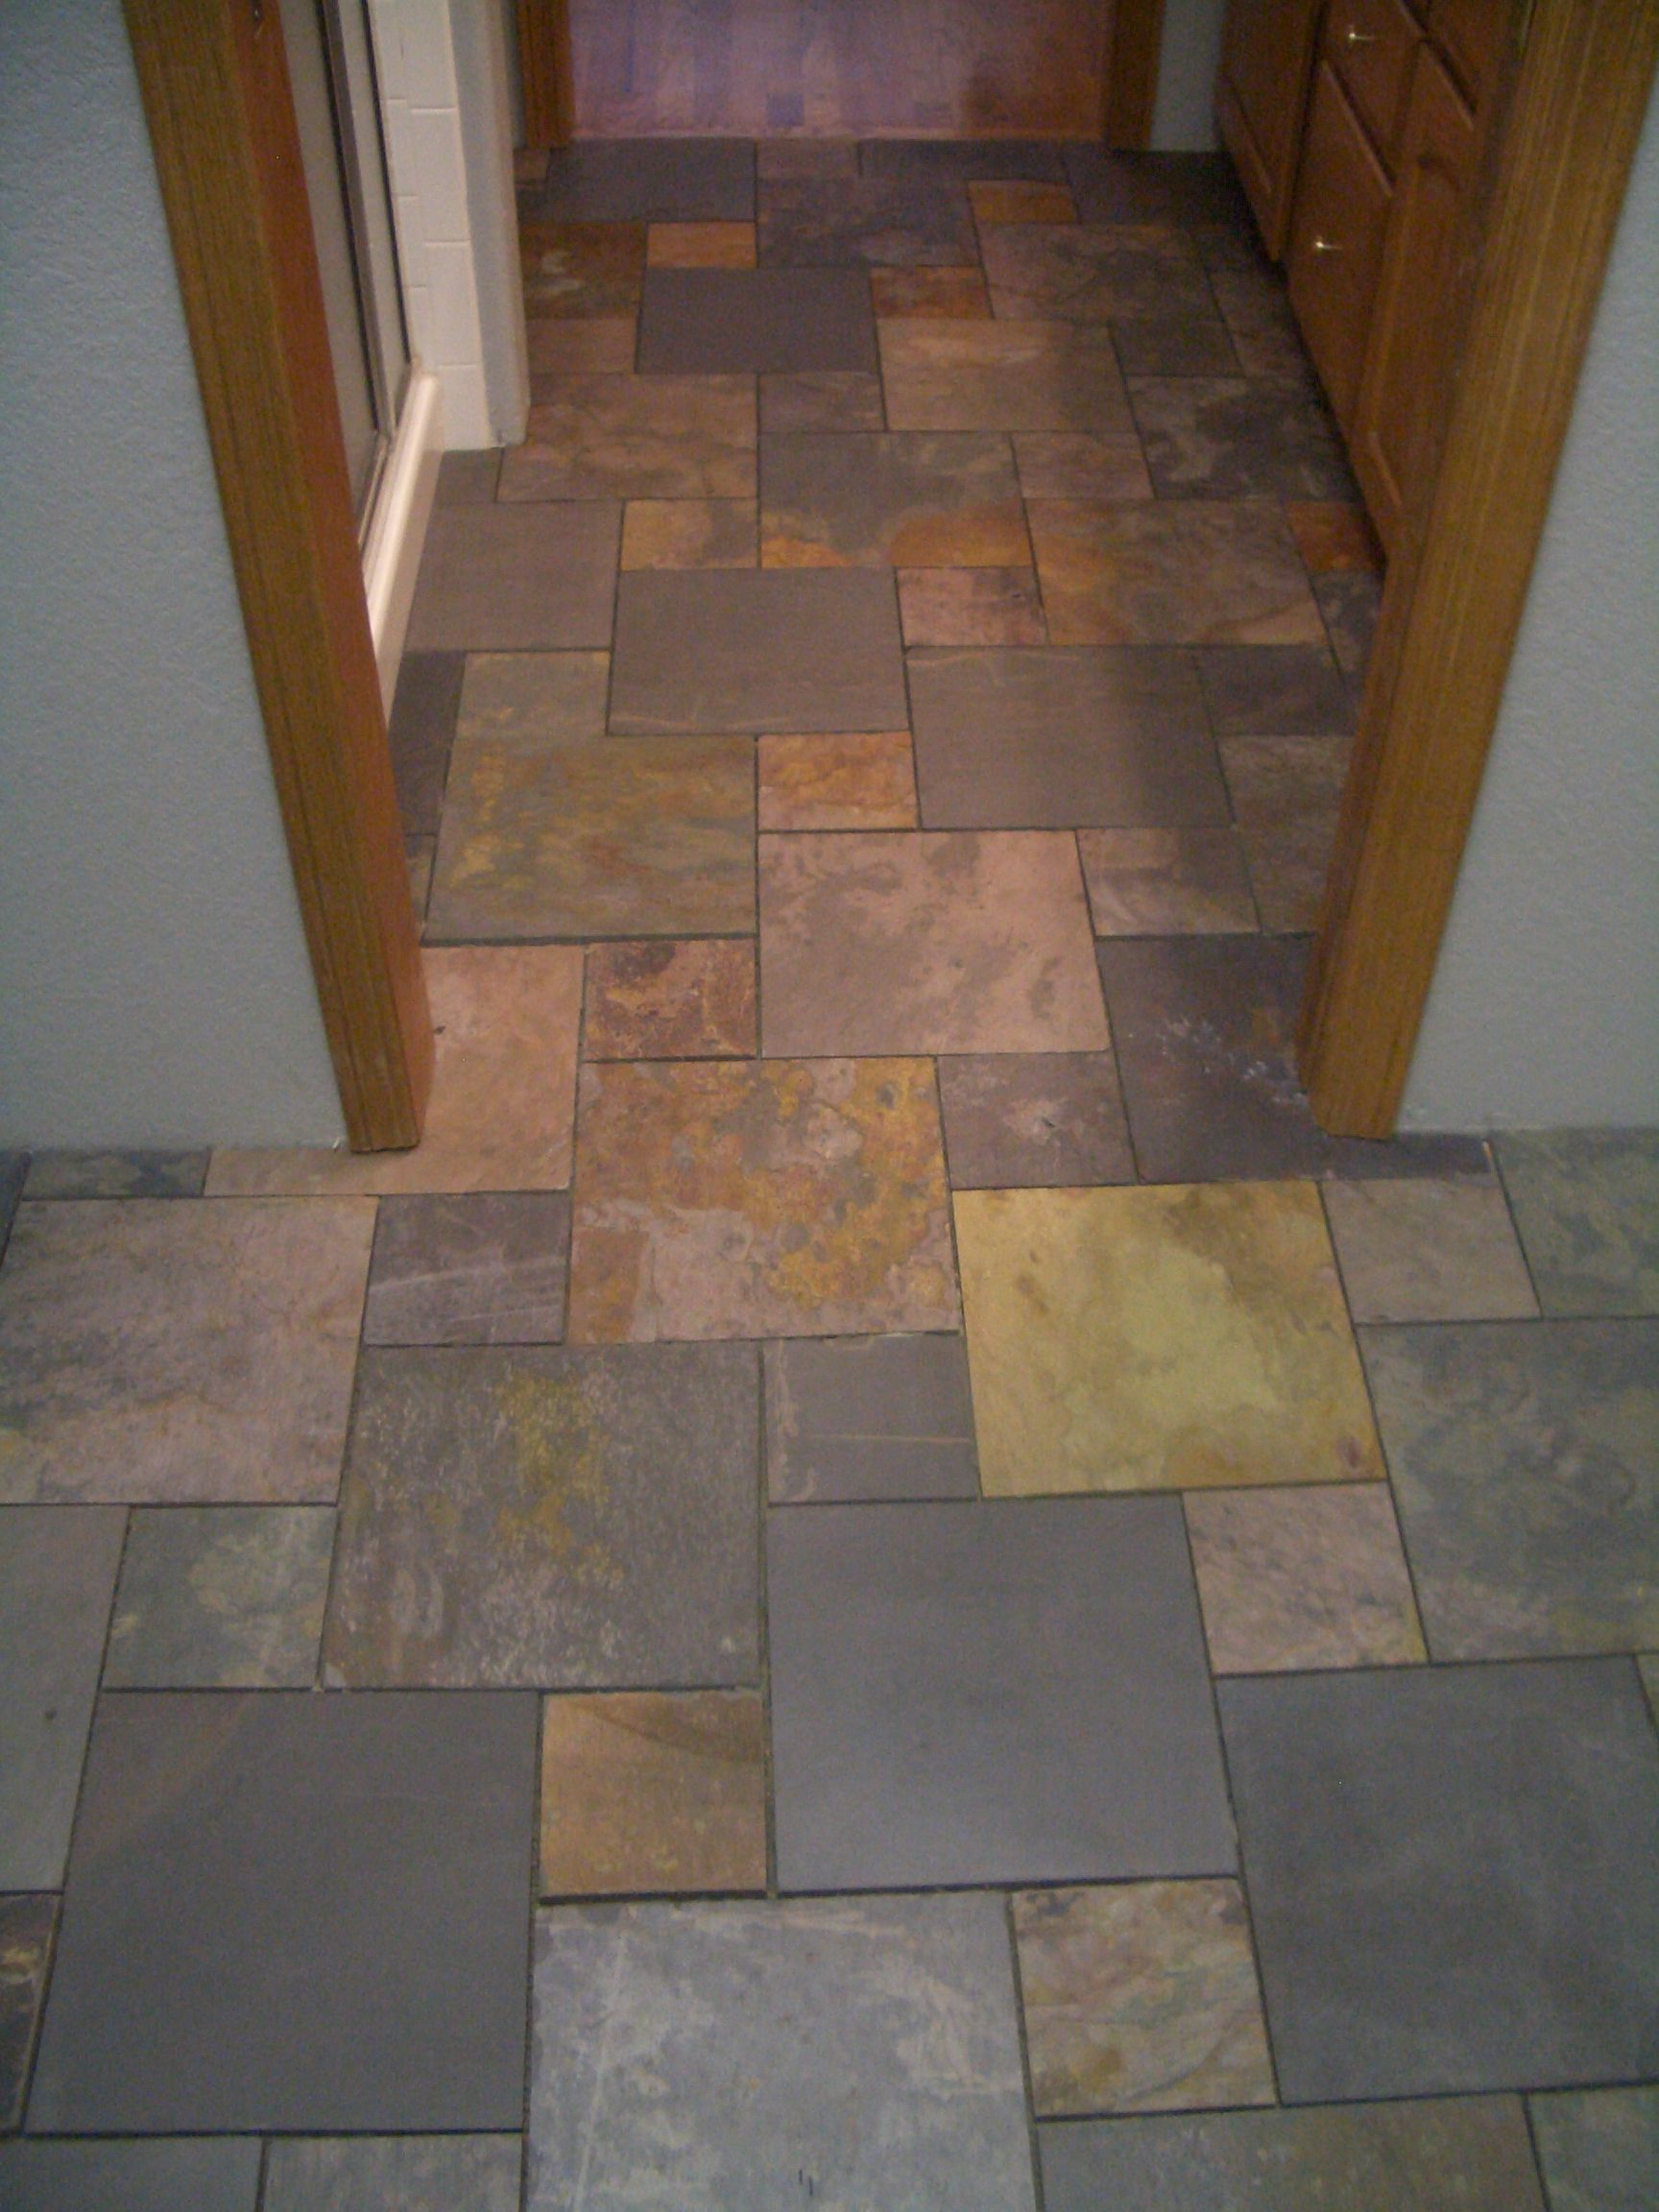 Bathroom floor tile ideas recently finished a bathroom laundry bathroom floor tile ideas recently finished a bathroom laundry room floor in fort collins doublecrazyfo Gallery